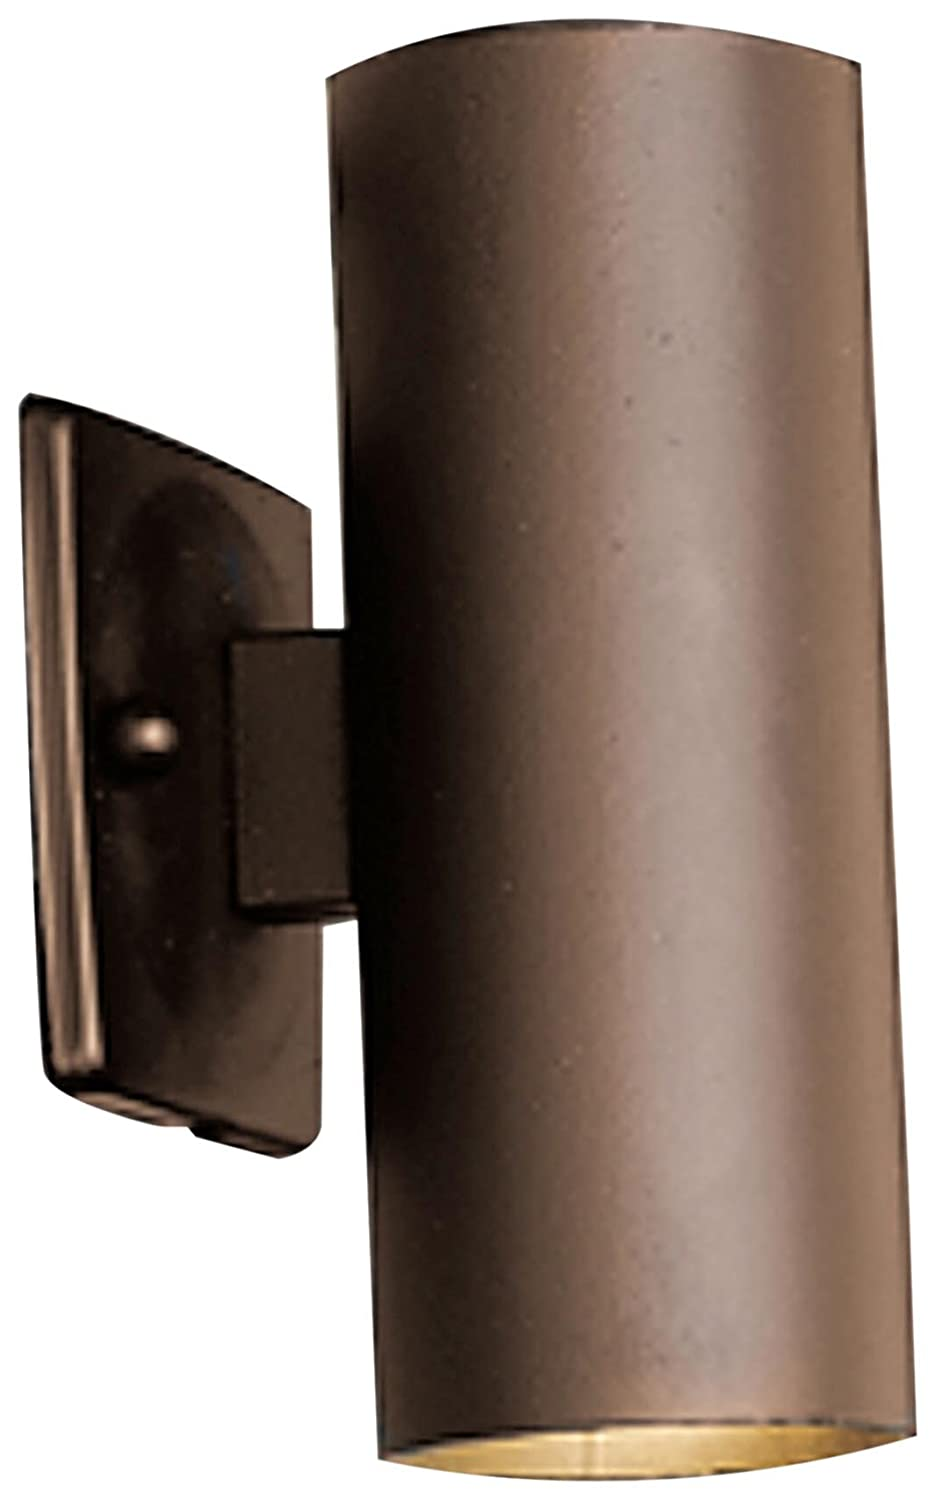 Kichler 15079AZT, Landscape 12 Volt Low Volt Flood Landscape Accent Lighting Xenon, Bronze